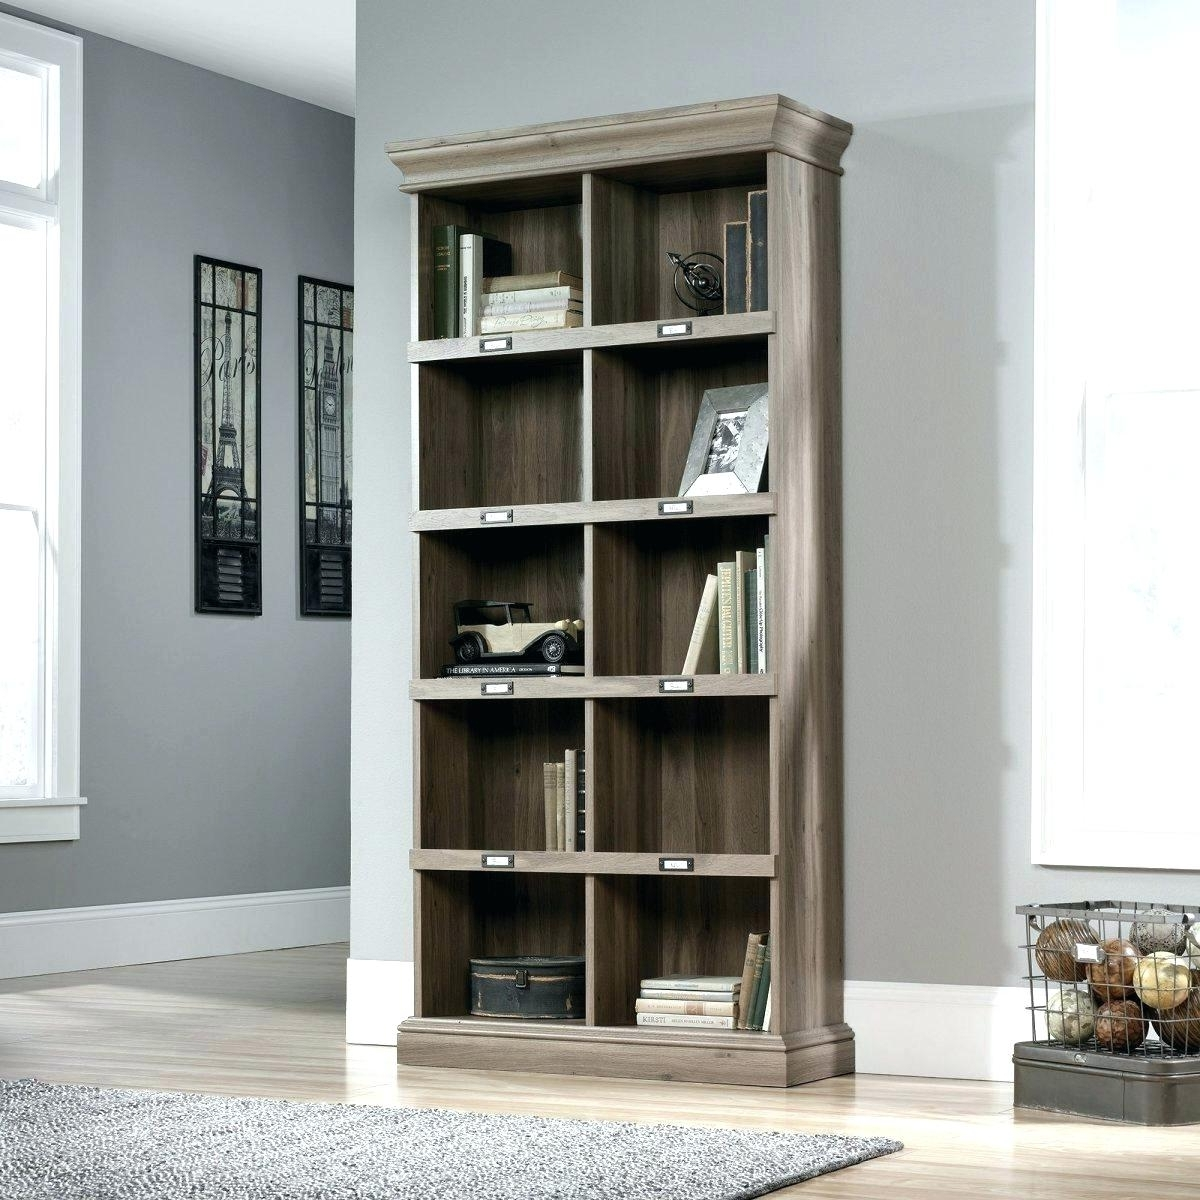 Most Current Sears Bookcases Pertaining To Decoration: White Bookcases With Glass Doors Sears Bookcase Queen (View 5 of 15)